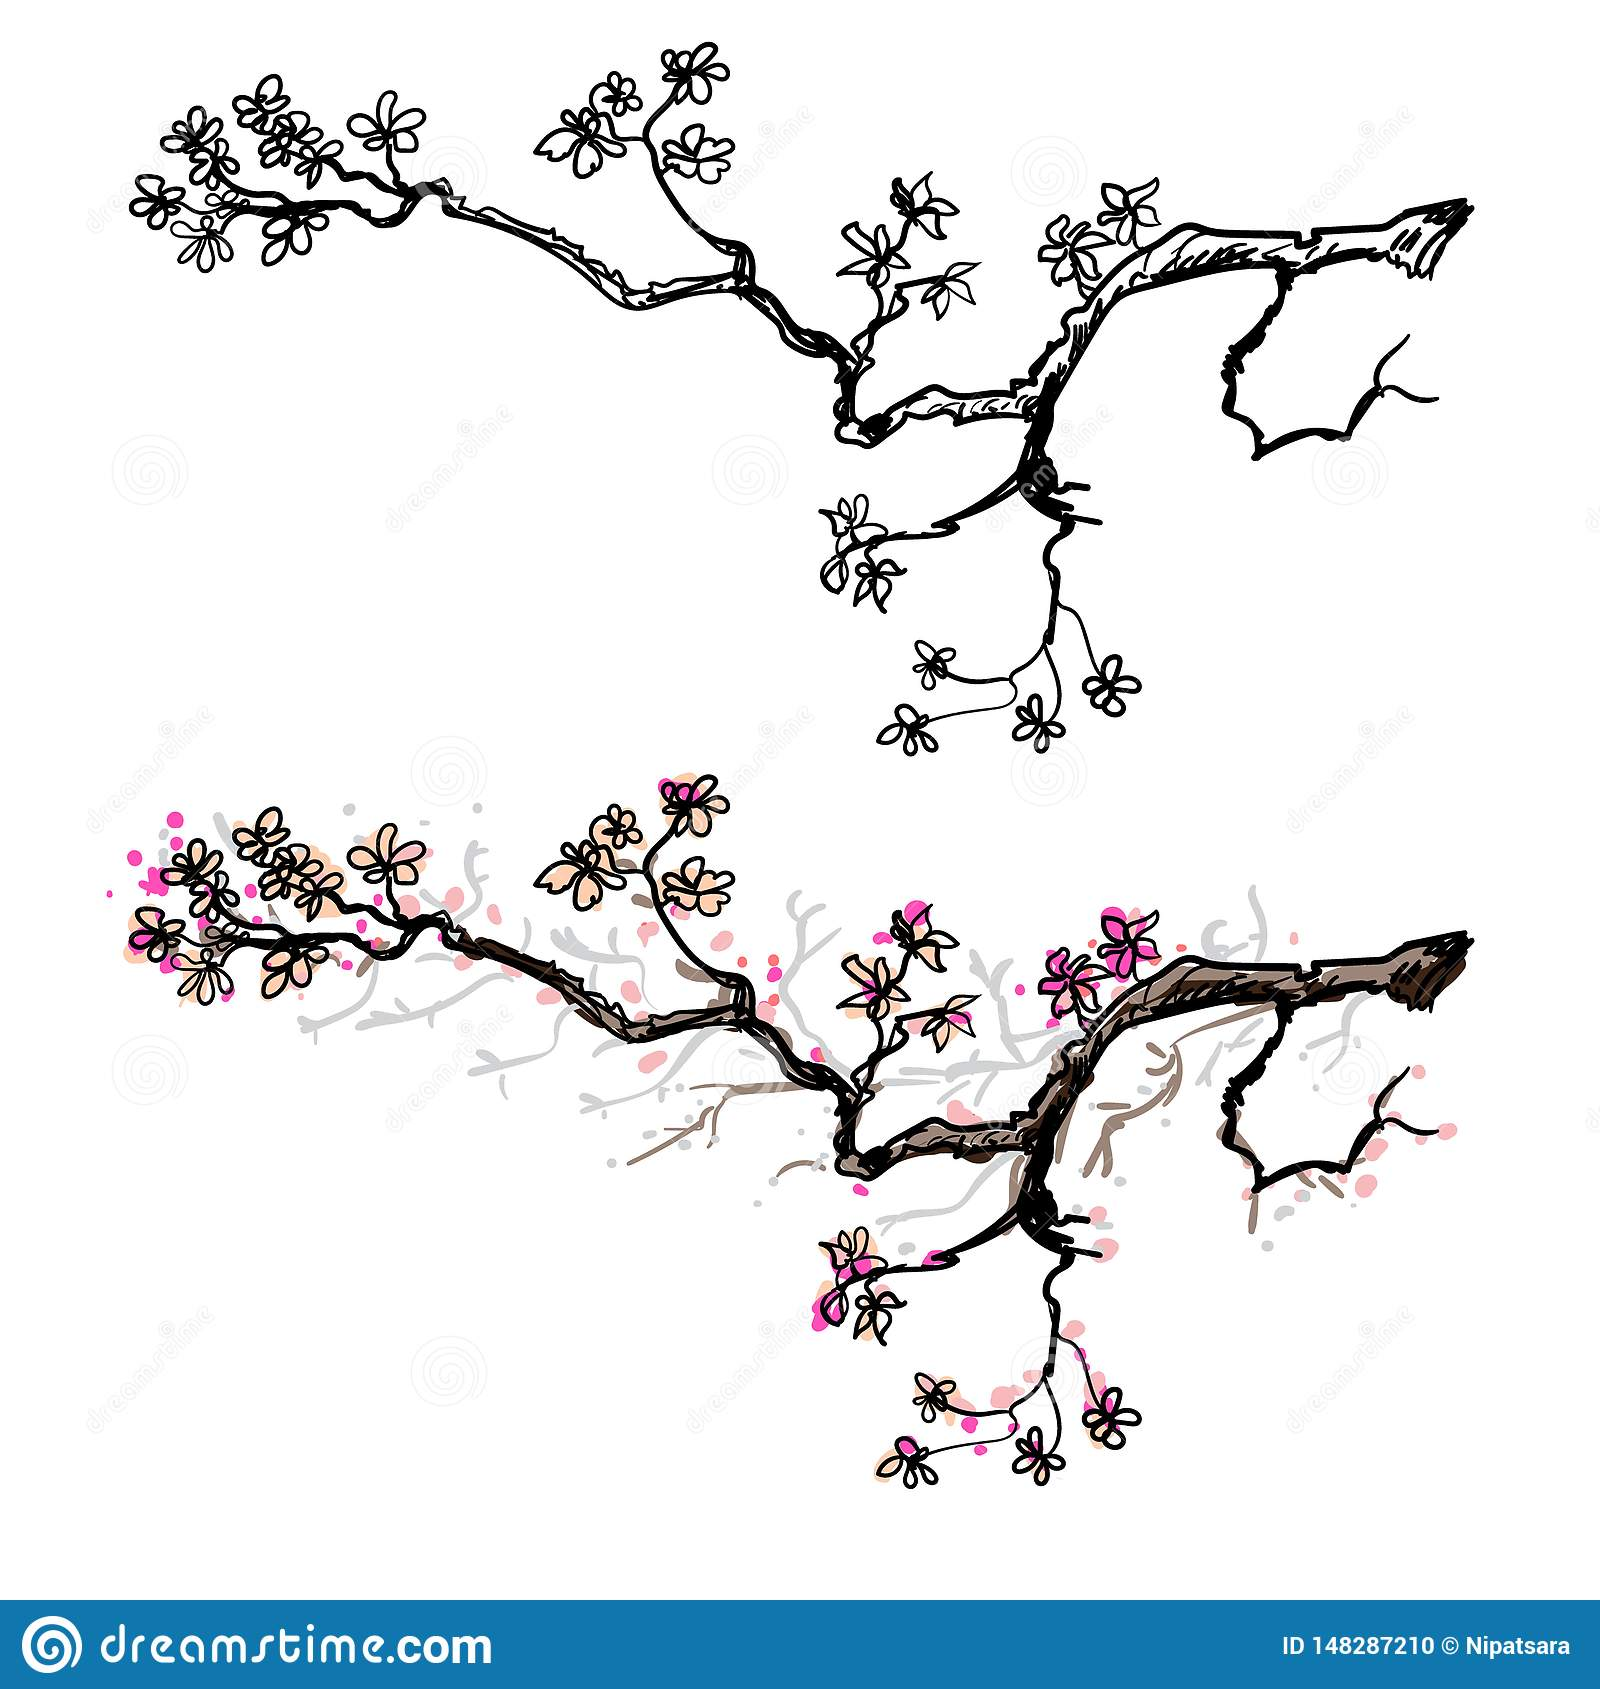 Cherry Blossom Flower Of Japan Outline And Silhouette Peach Blossom Stock Vector Illustration Of Japanese Blossom 148287210